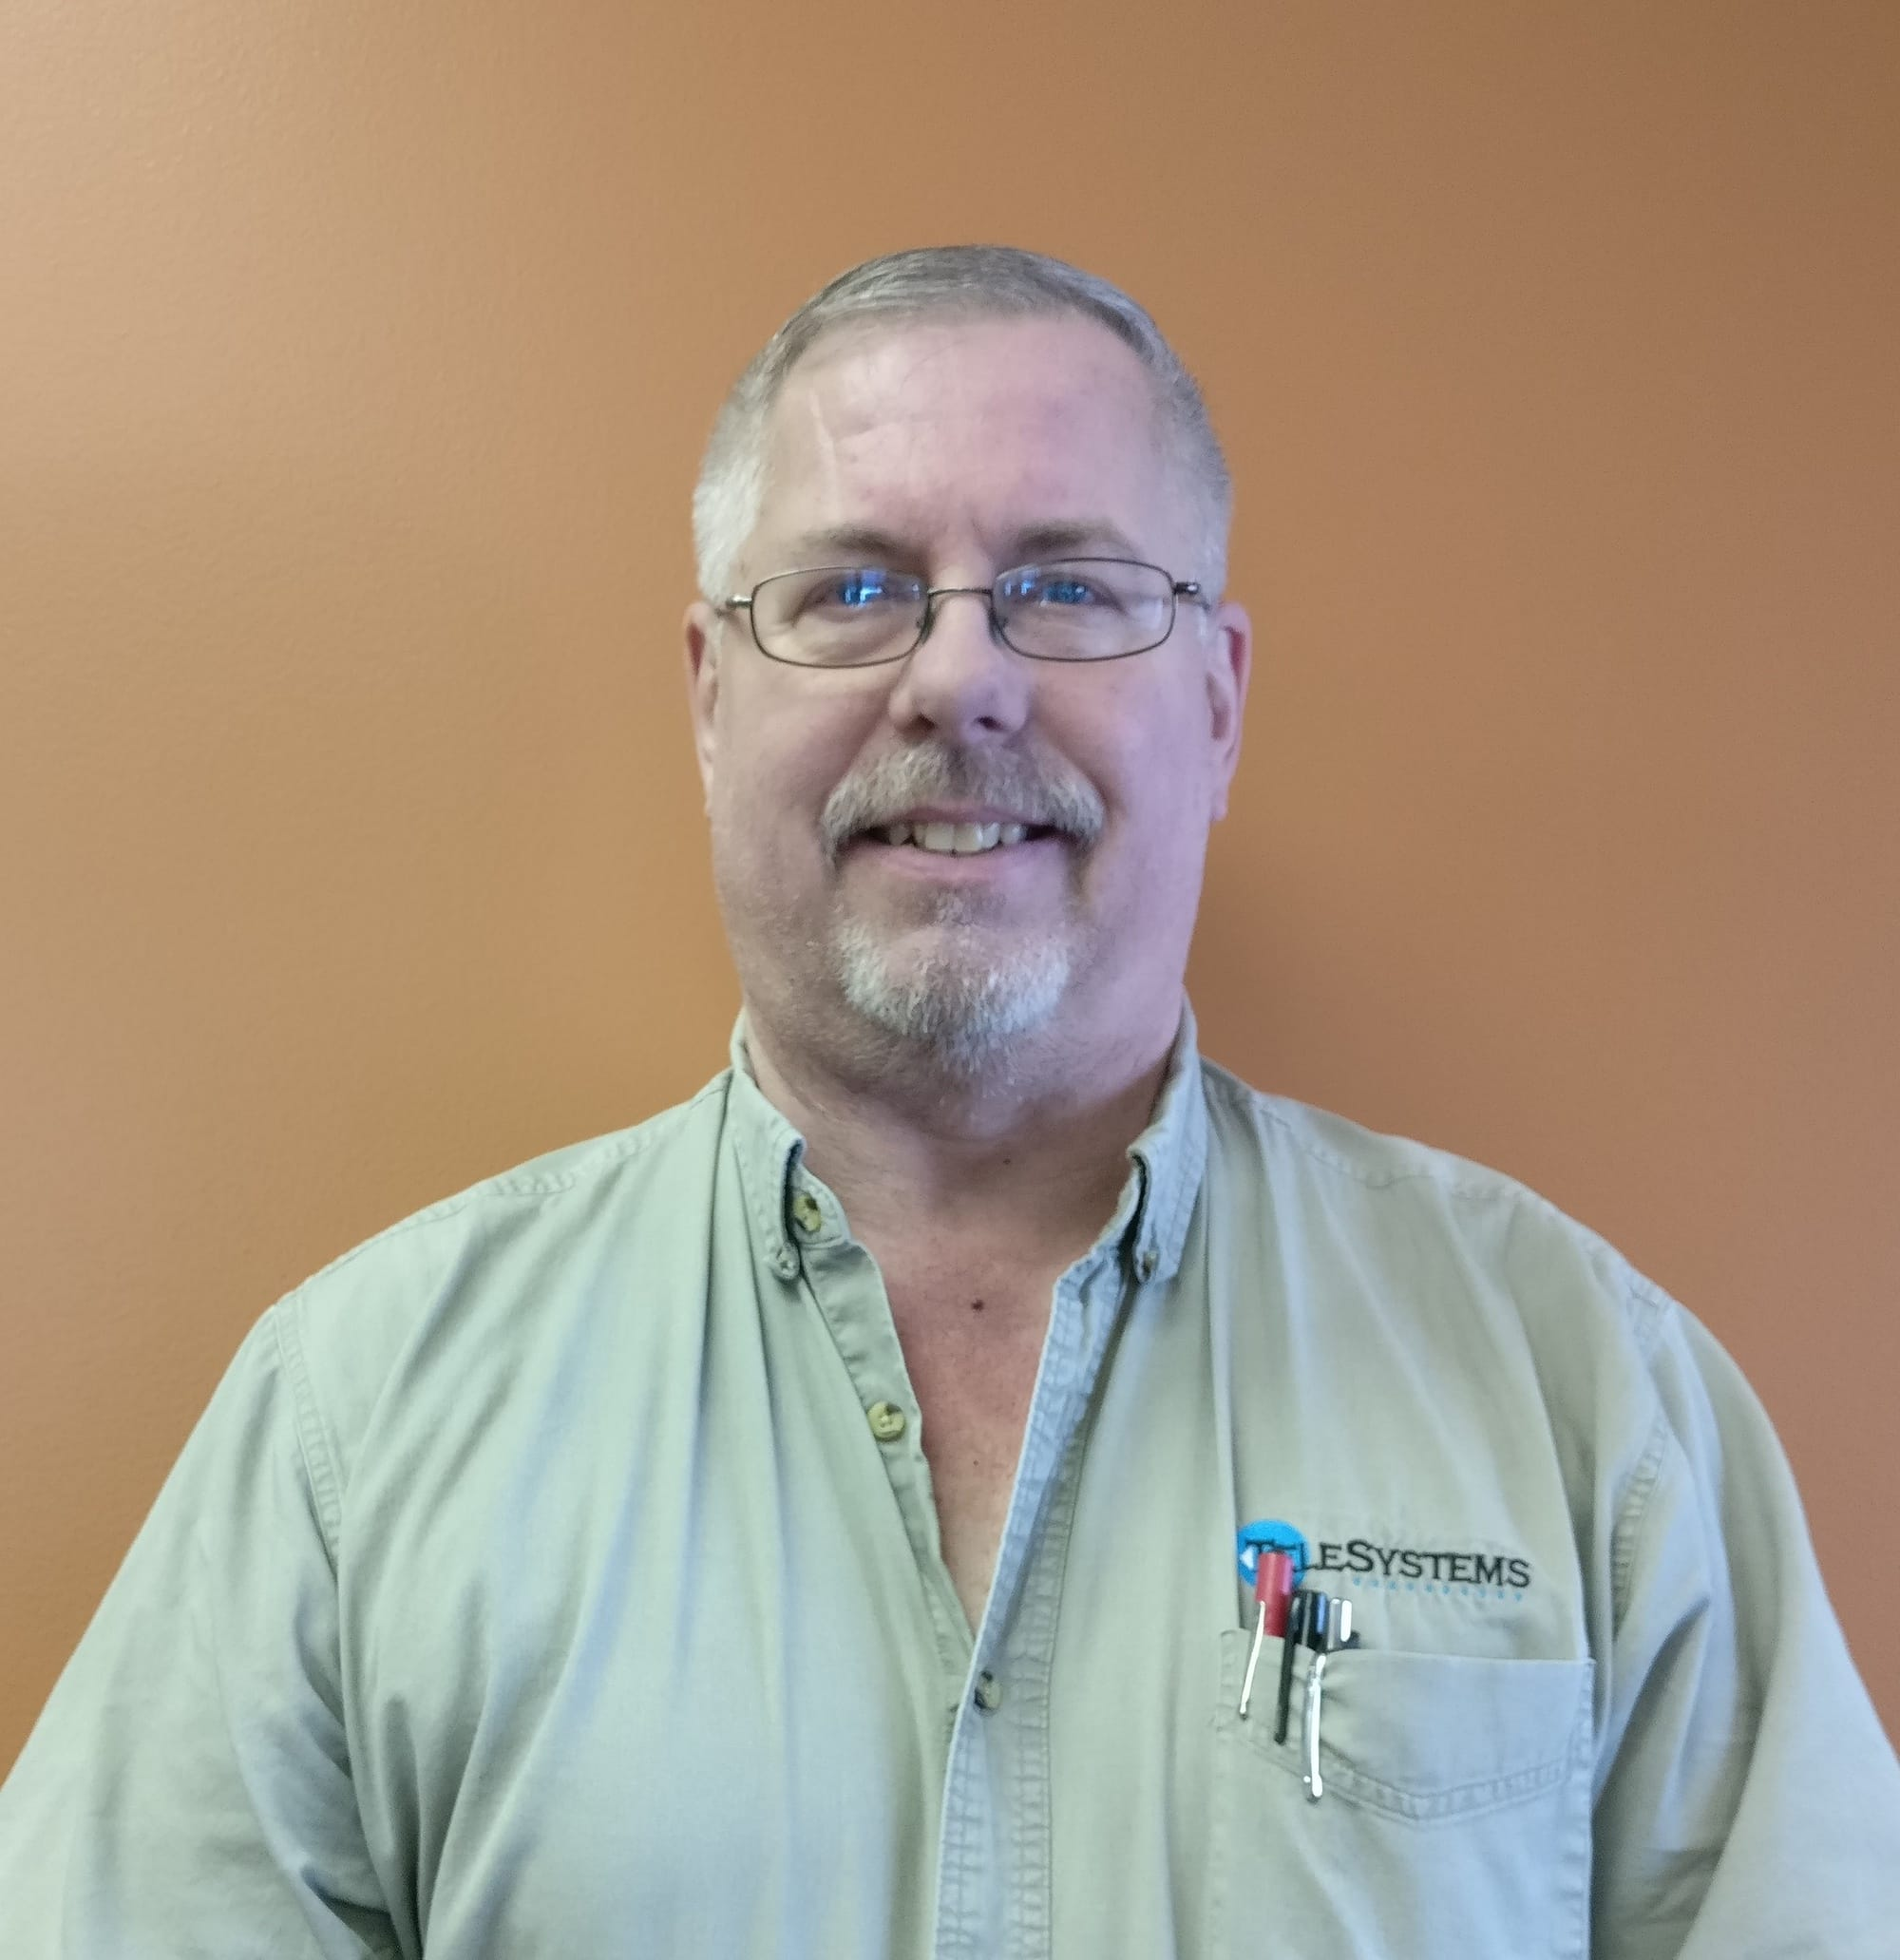 Meet the team: Bob Tingwald - Featured Image